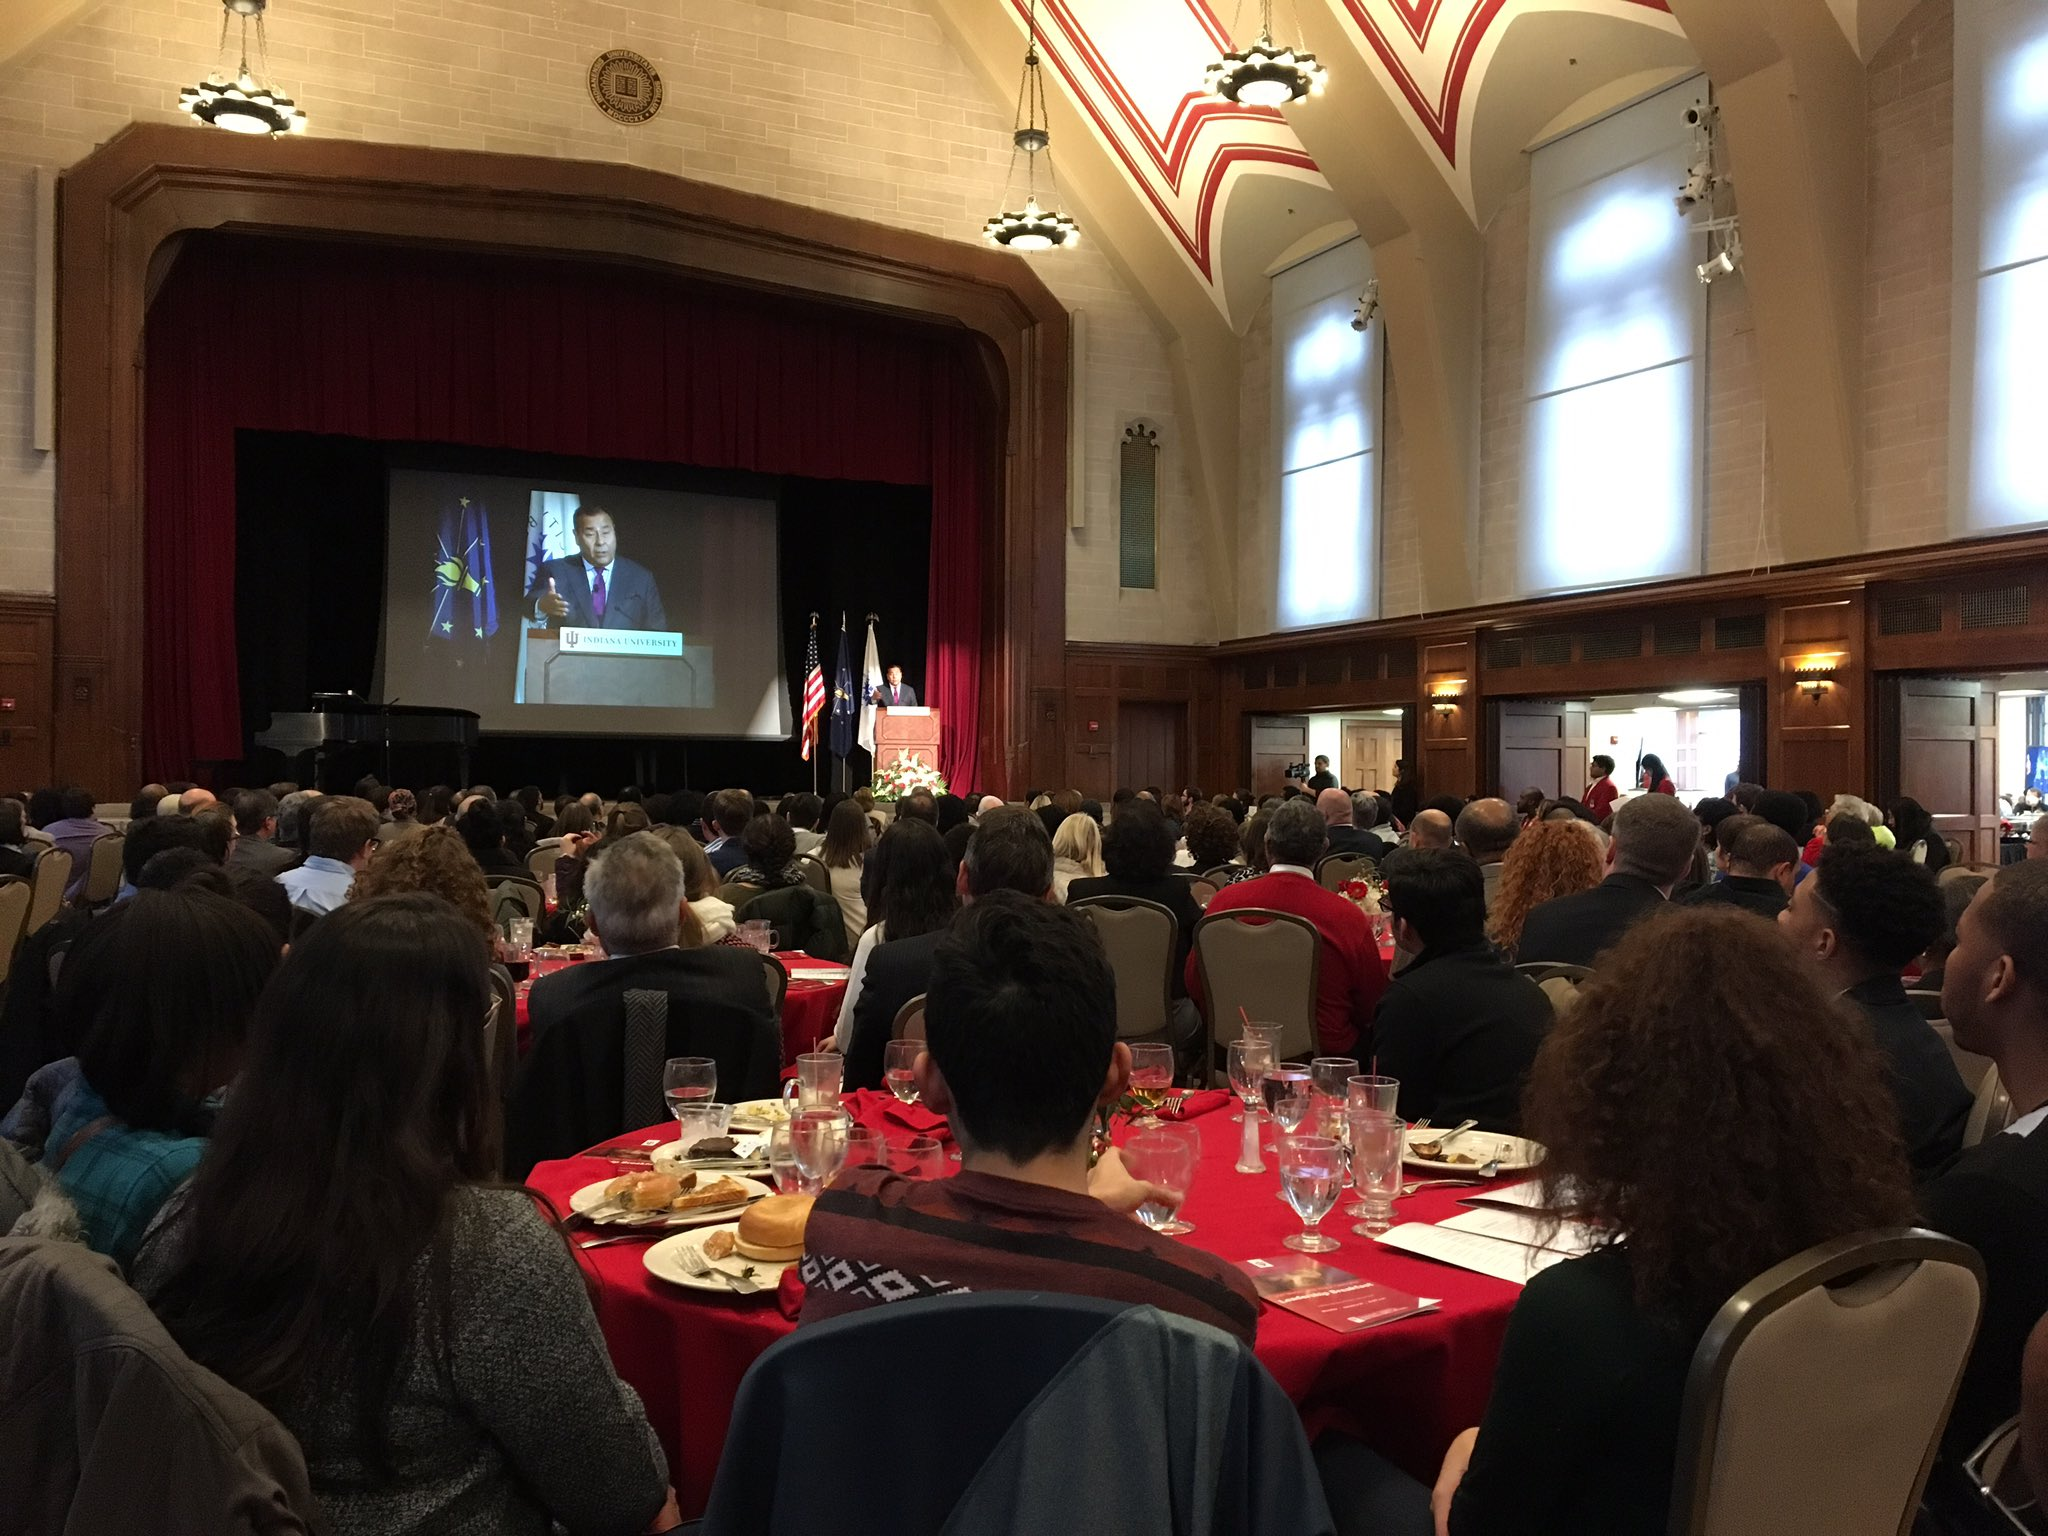 An inspiring talk by John Quinones at the MLK Celebration Leadership Breakfast. A fantastic way to start MLK day! @IU_OVPDEMA https://t.co/CkmOwnBxzC